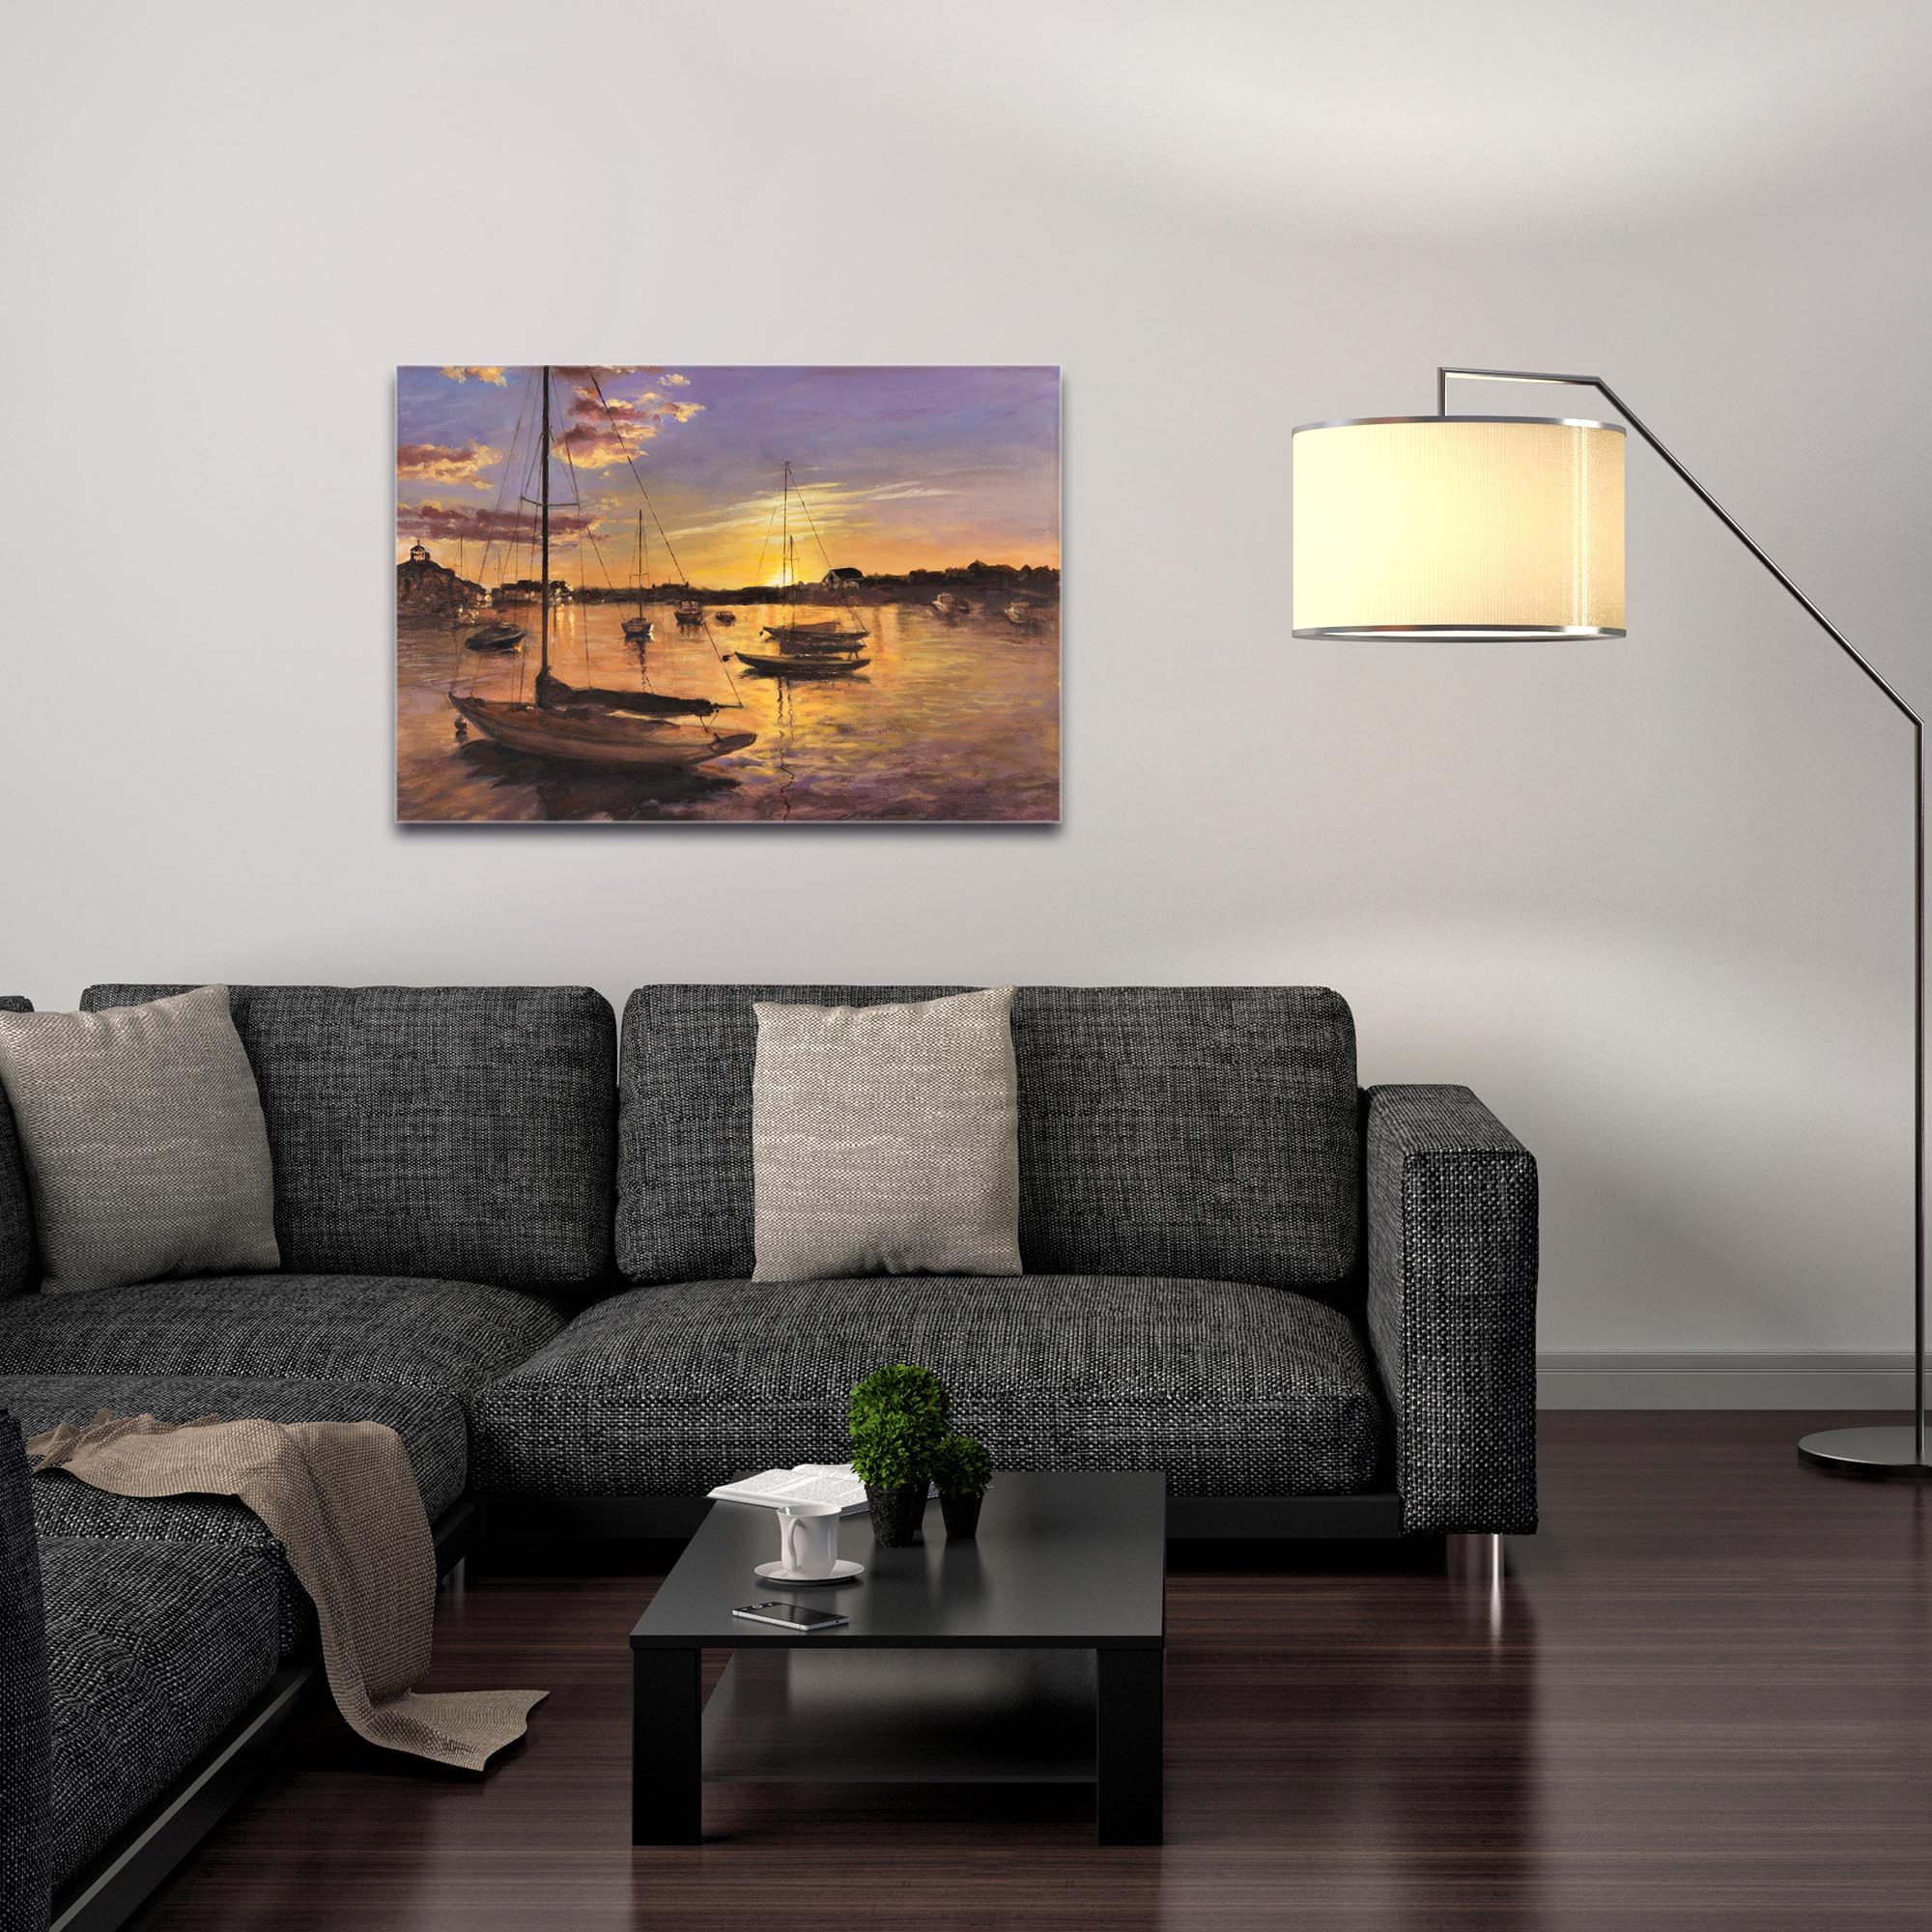 Coastal Wall Art 'Harbor 1' - Boats Decor on Metal or Plexiglass - Image 3